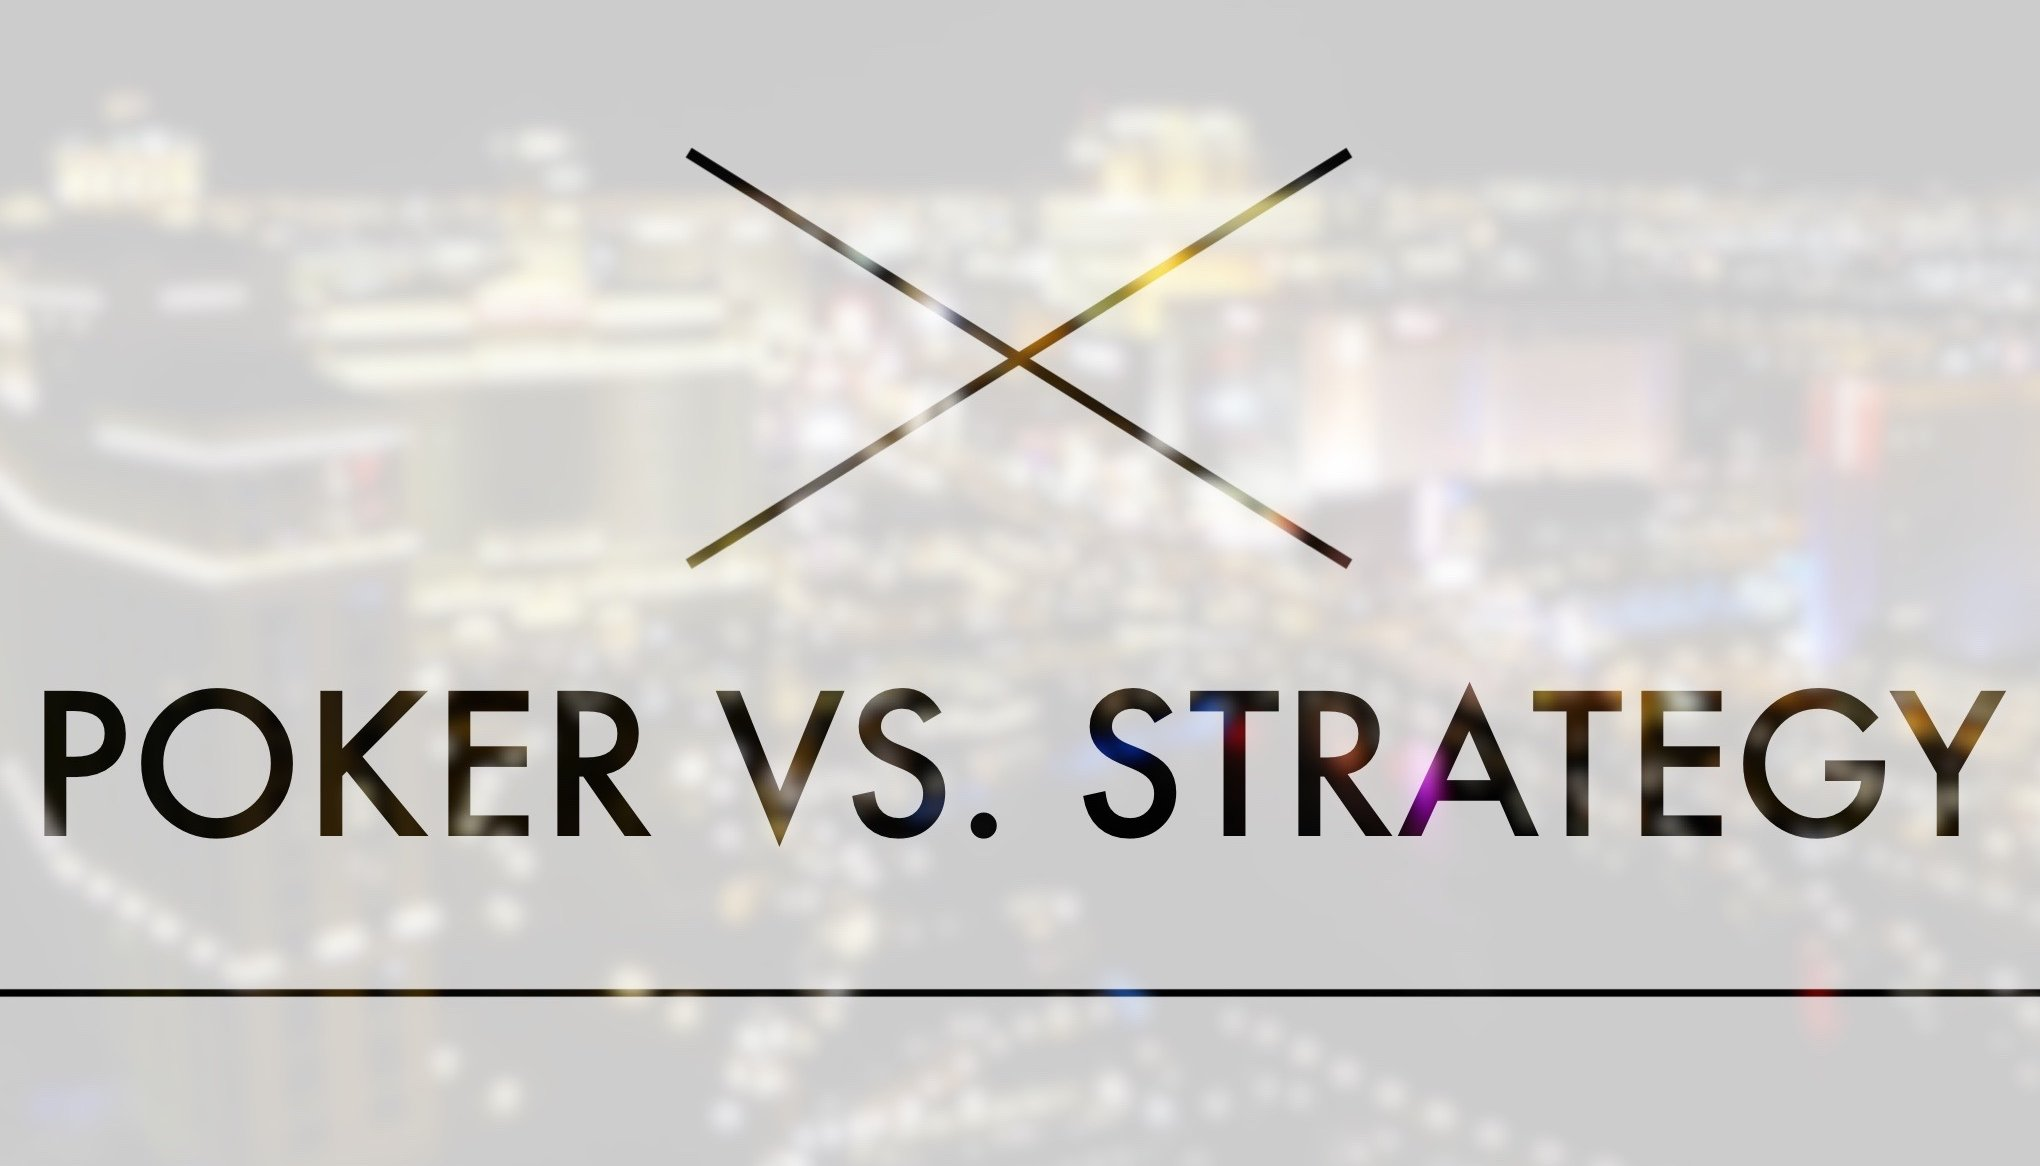 strategy essay what corporate strategy can learn from poker essay  what corporate strategy can learn from poker poker vs strategy